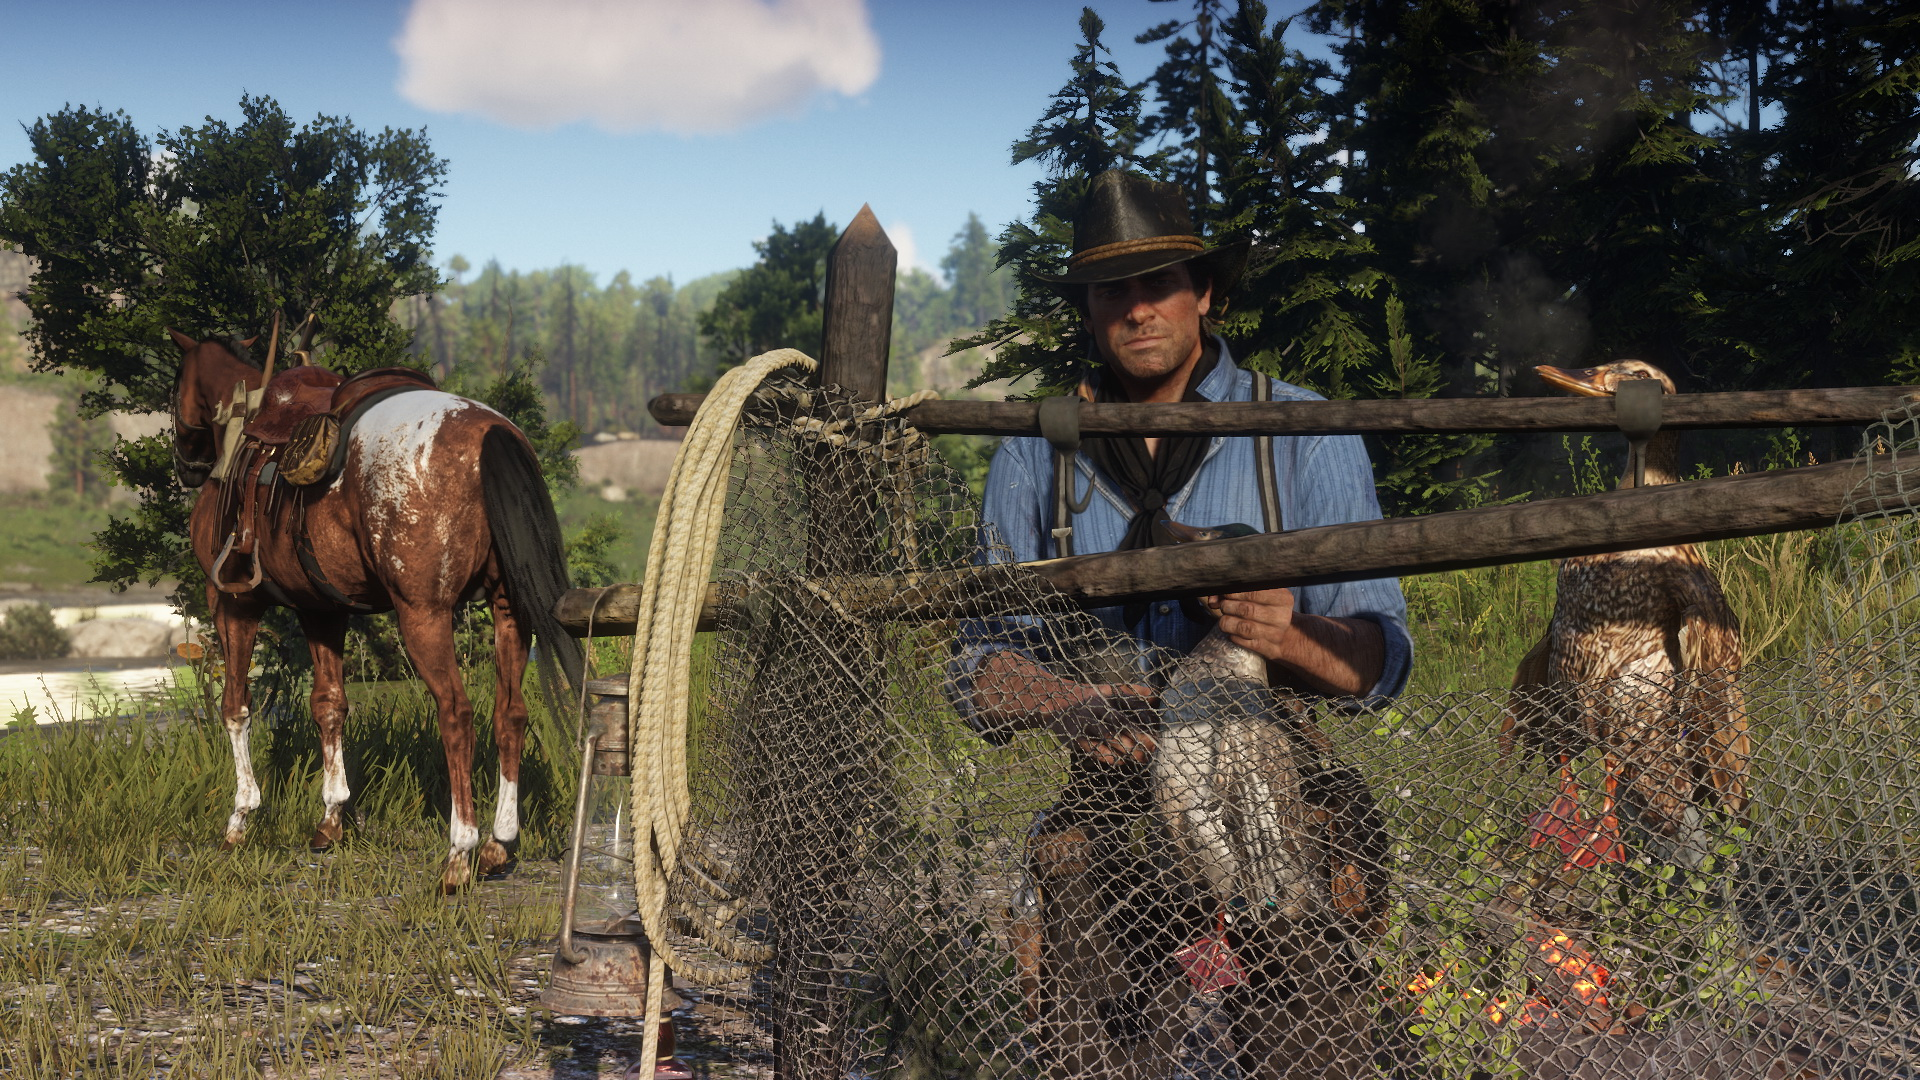 More Red Dead Redemption 2 screenshots, new info next month